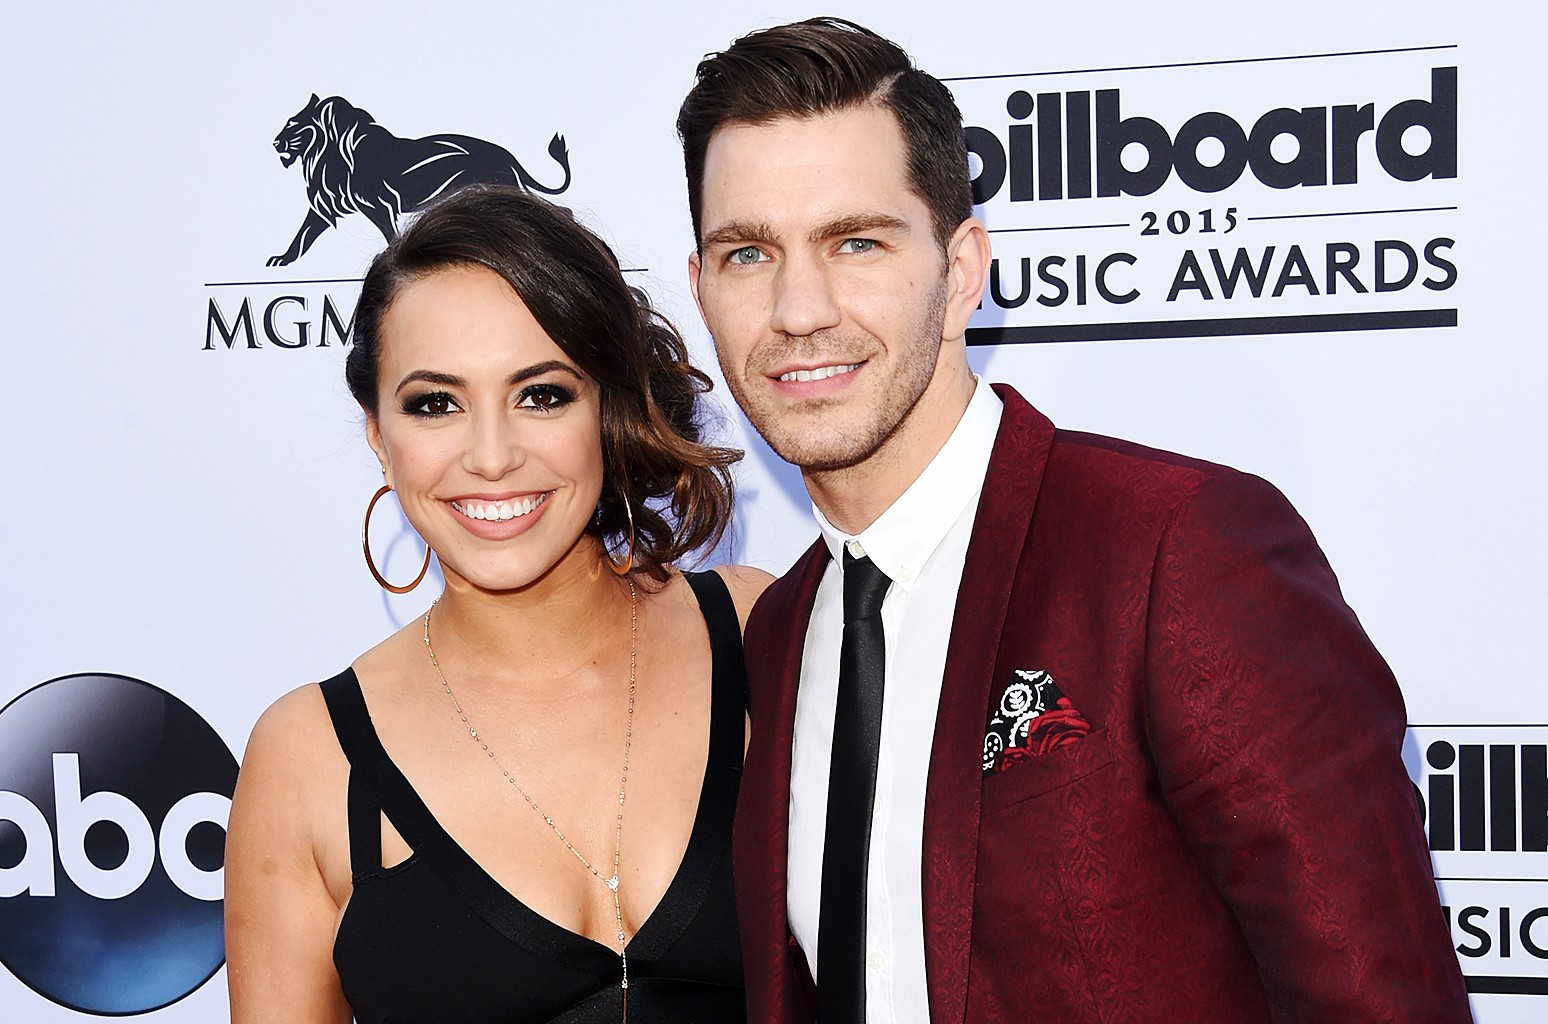 Aijia Lise and Andy Grammer attend the 2015 Billboard Music Awards at MGM Grand Garden Arena on May 17, 2015 in Las Vegas.